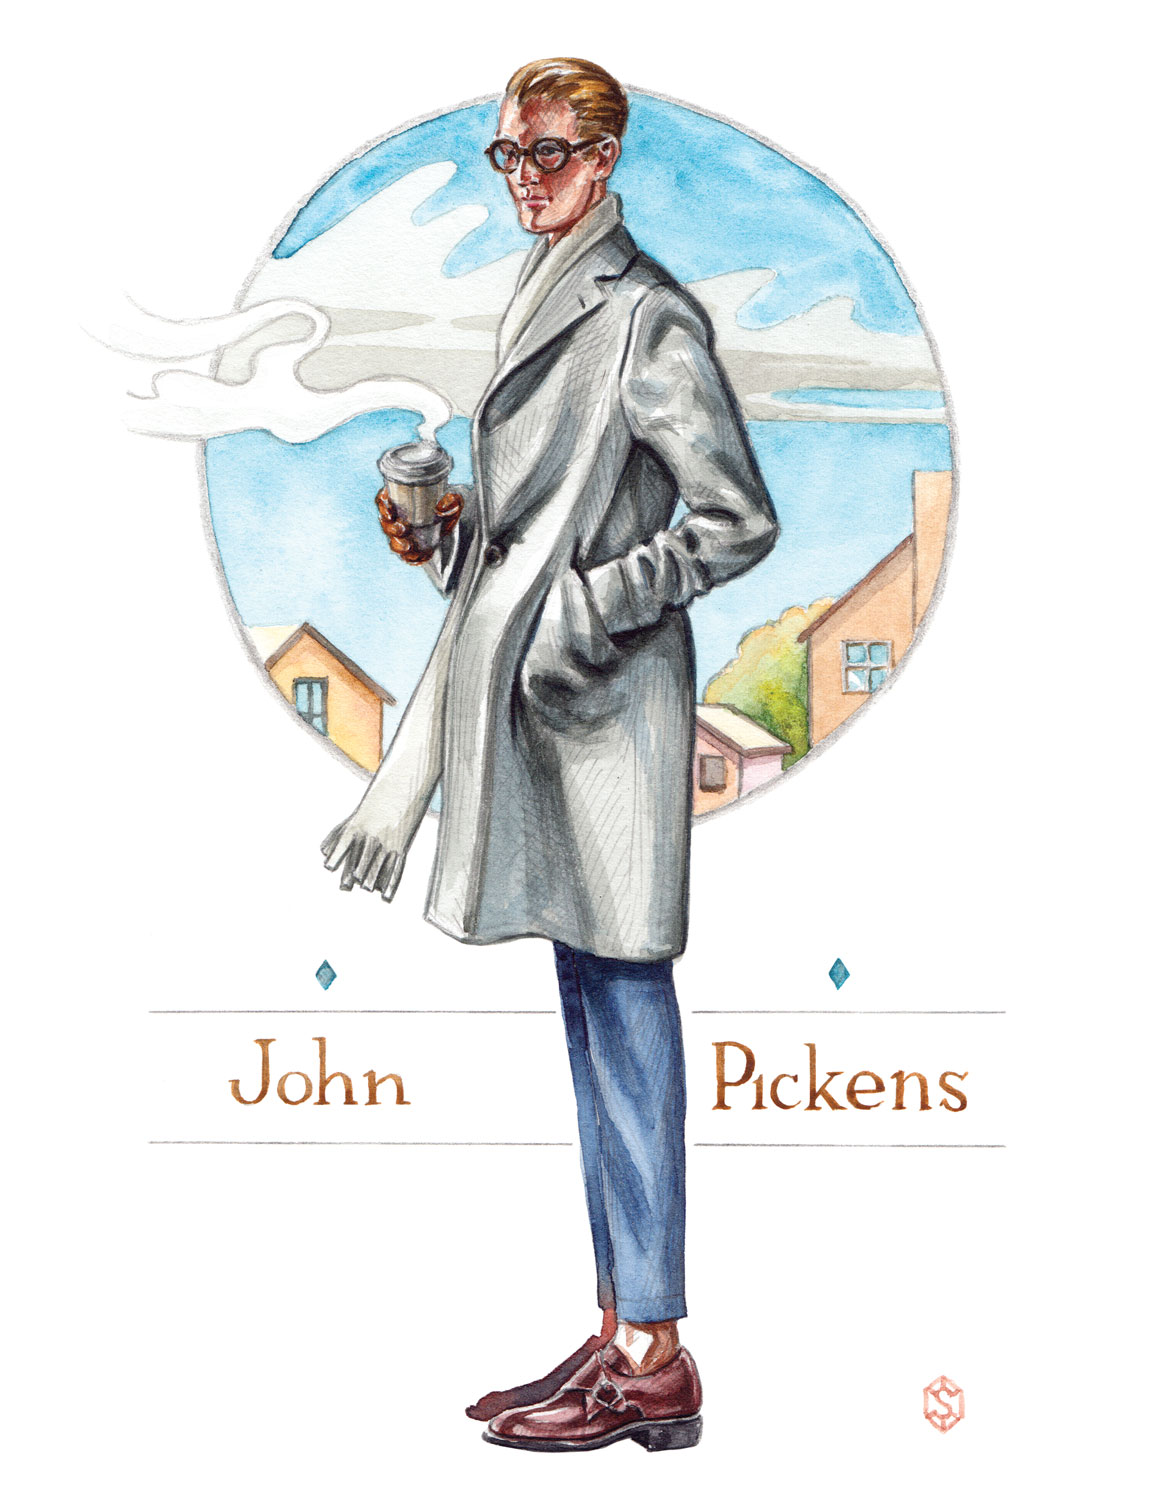 John Pickens Mens Clothing, Autumn 2016 ad illustration